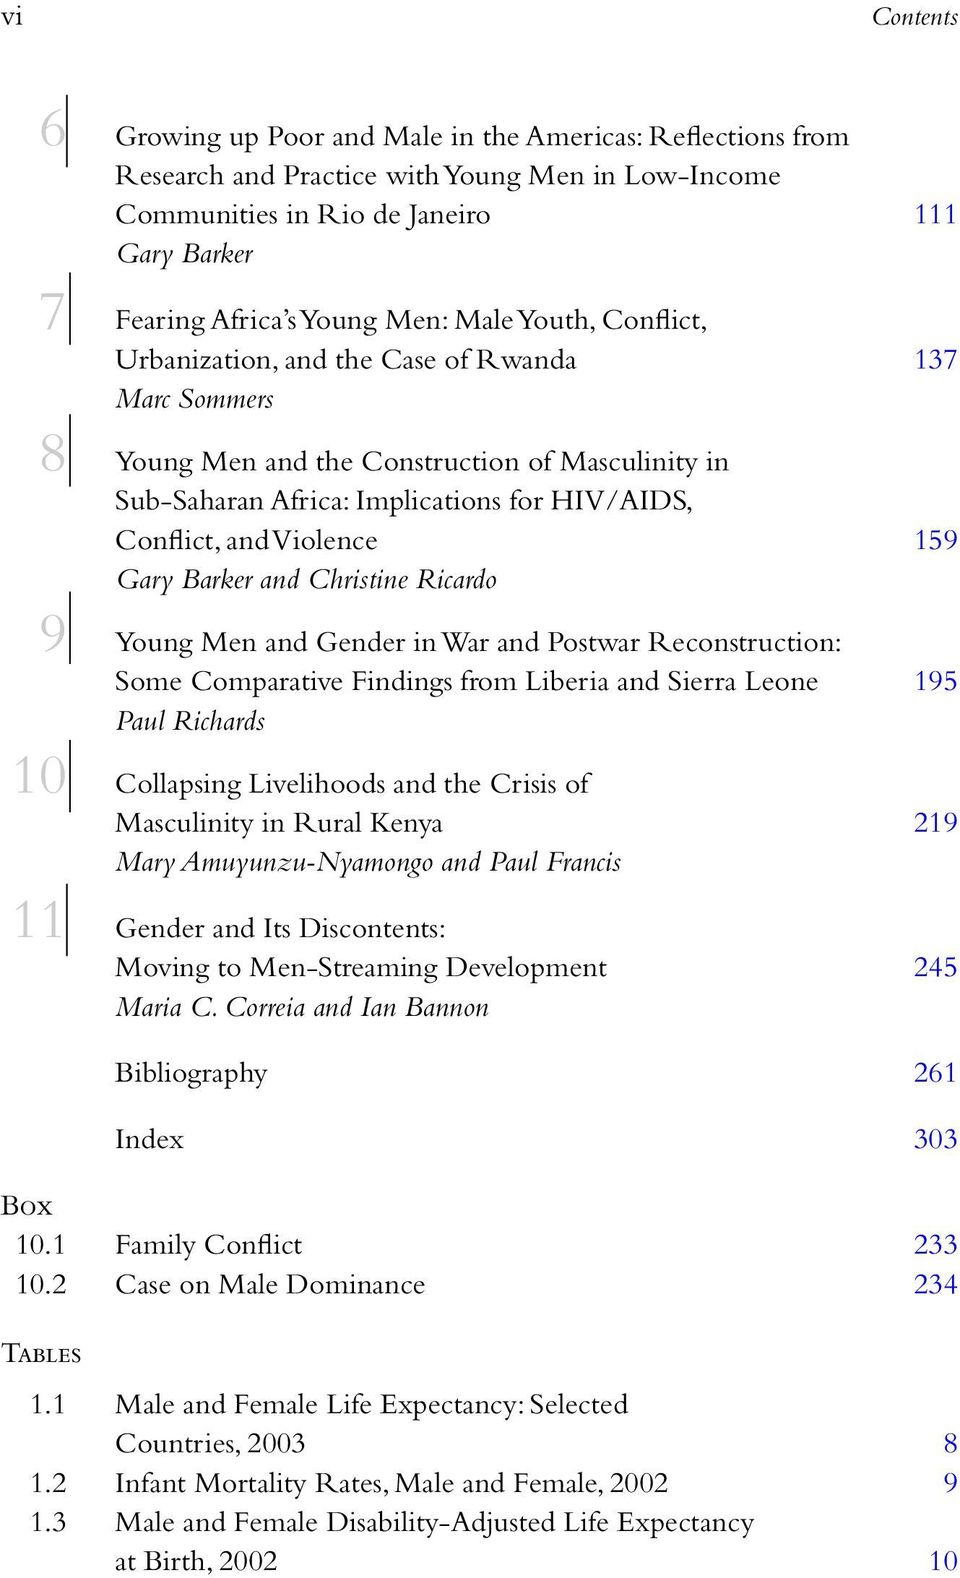 159 Gary Barker and Christine Ricardo 9 Young Men and Gender in War and Postwar Reconstruction: Some Comparative Findings from Liberia and Sierra Leone 195 Paul Richards 10 Collapsing Livelihoods and